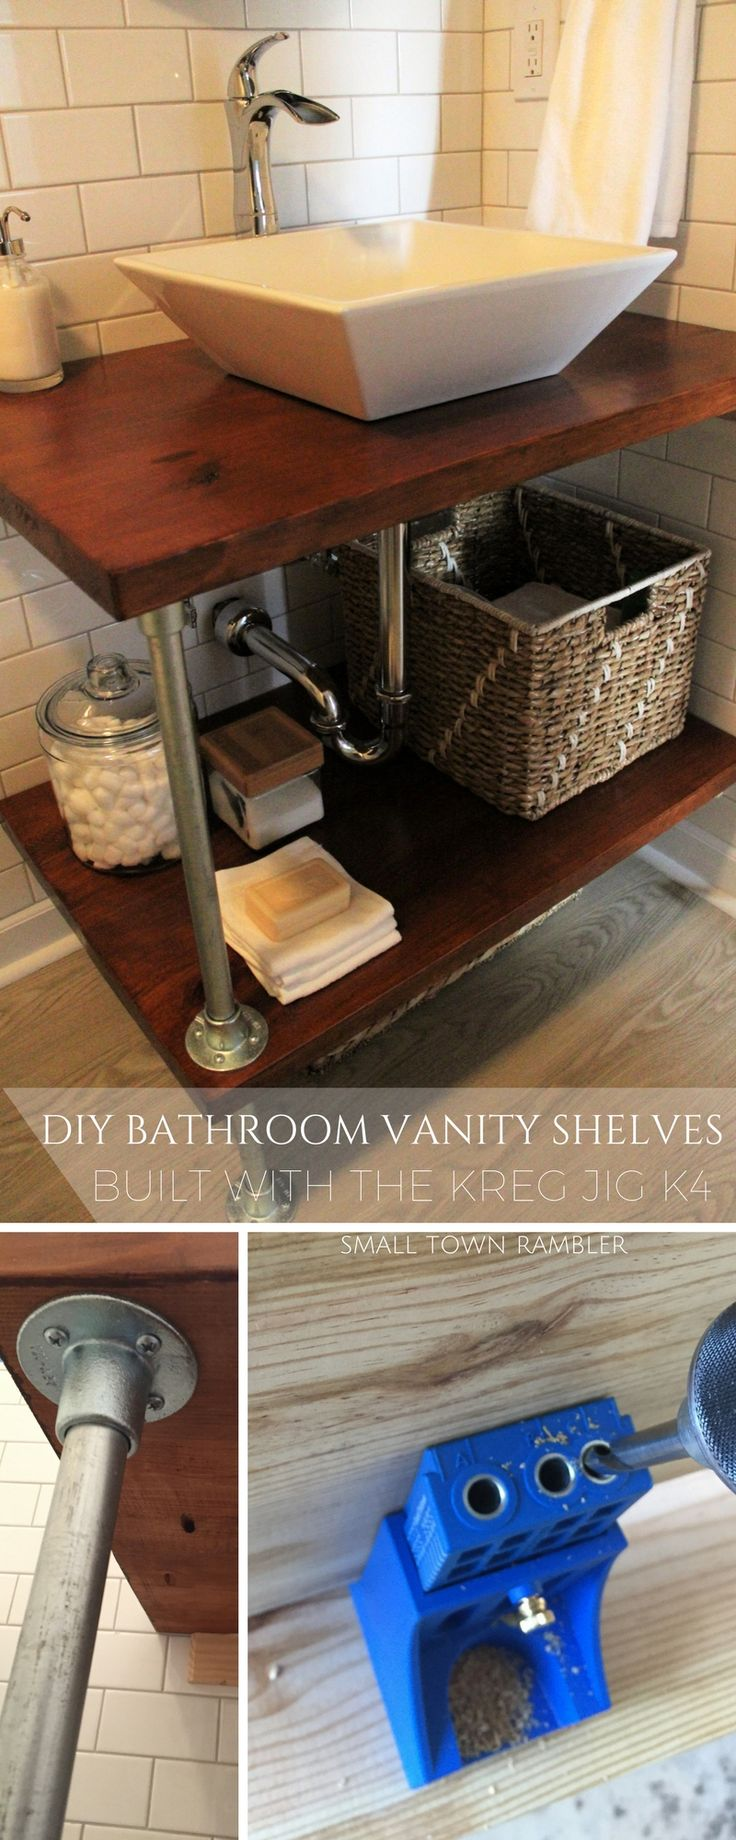 DIY Open Bathroom Vanity Shelves Built with the Kreg Jig K4. @kregtool